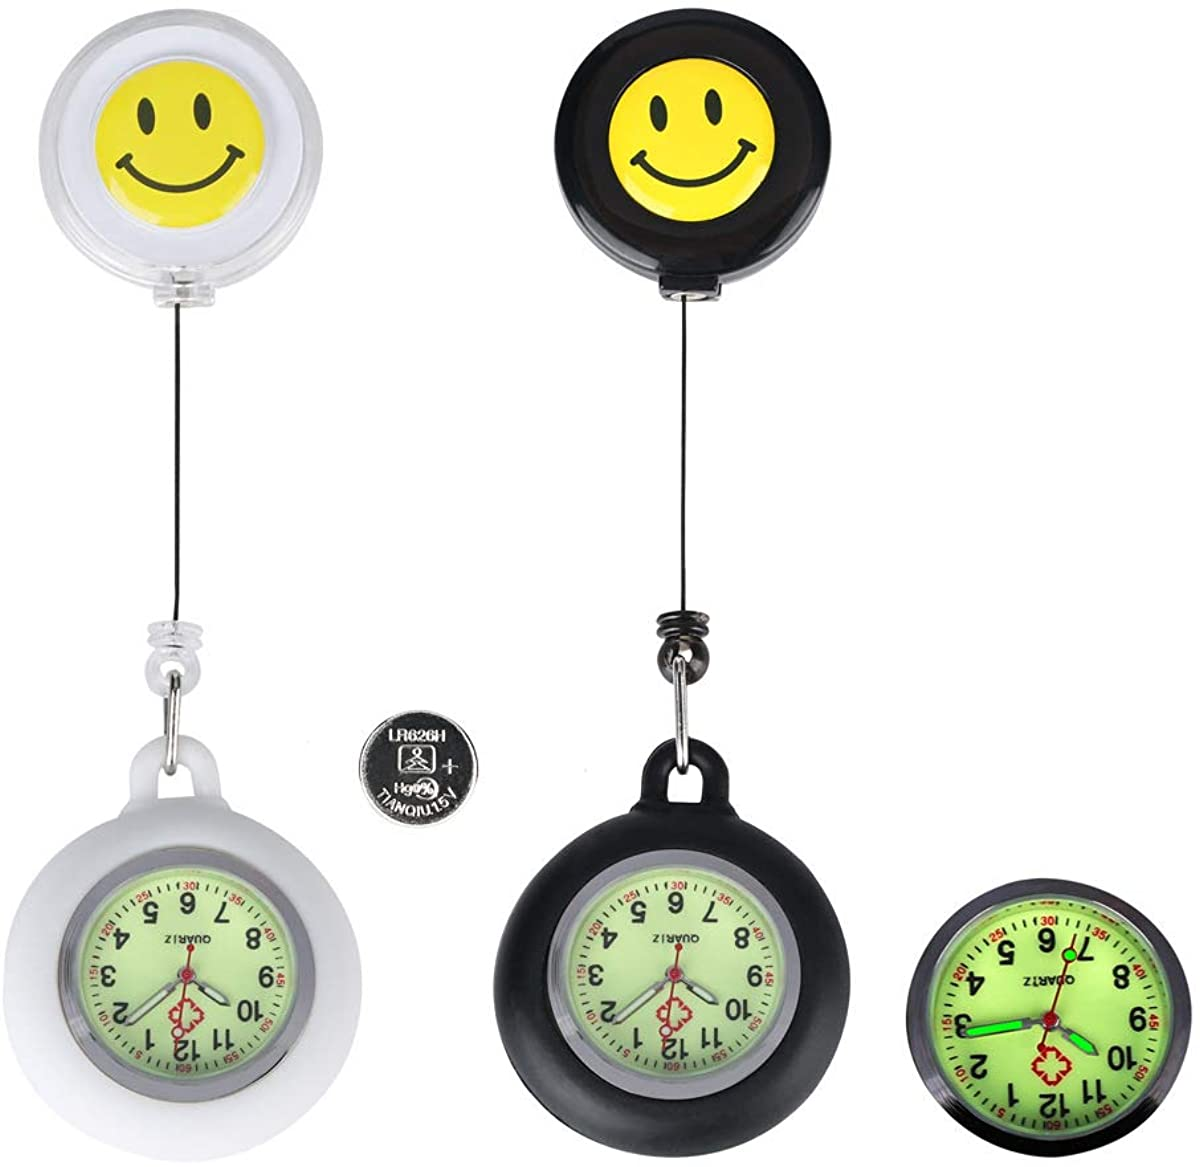 Nurse Fob Watch for Nurses Doctors,Clip On Luminous Retractable Glow in Dark Paramedic Unisex Digital Pocket Watches with Extra Battery,Medical Silicone Case,Men Women Present